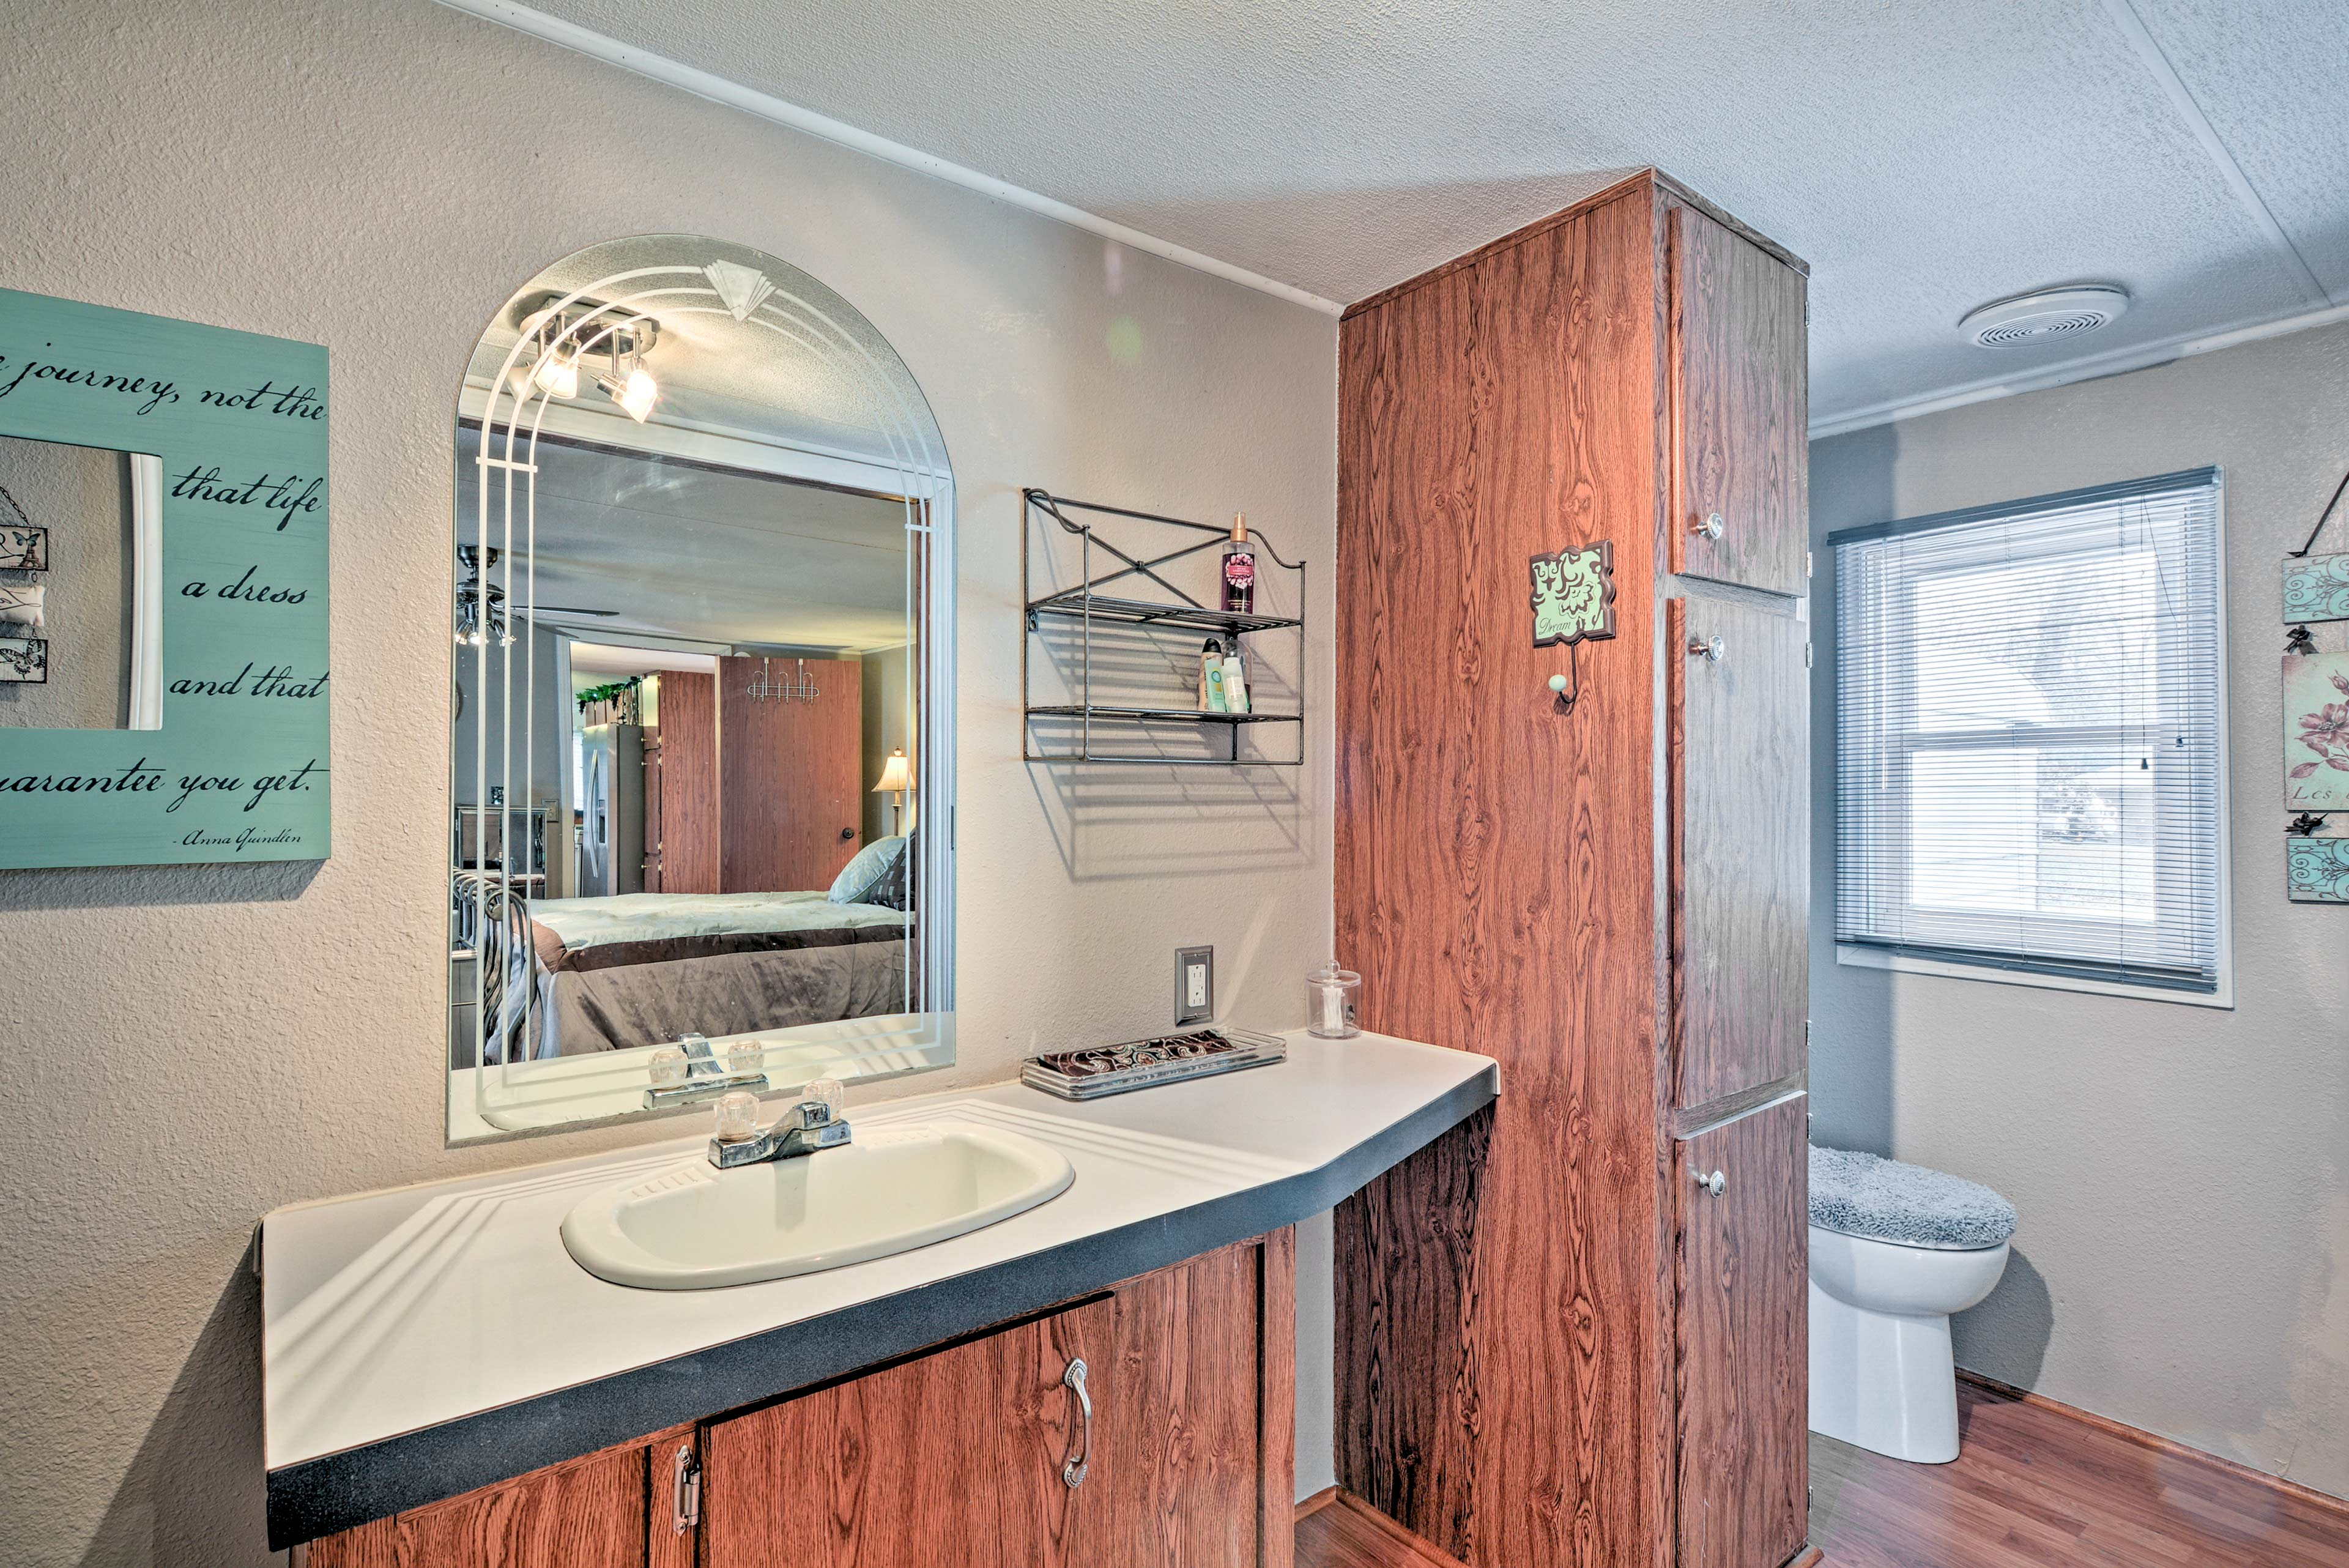 Shower off in the private en-suite bathroom stocked with fresh towels.